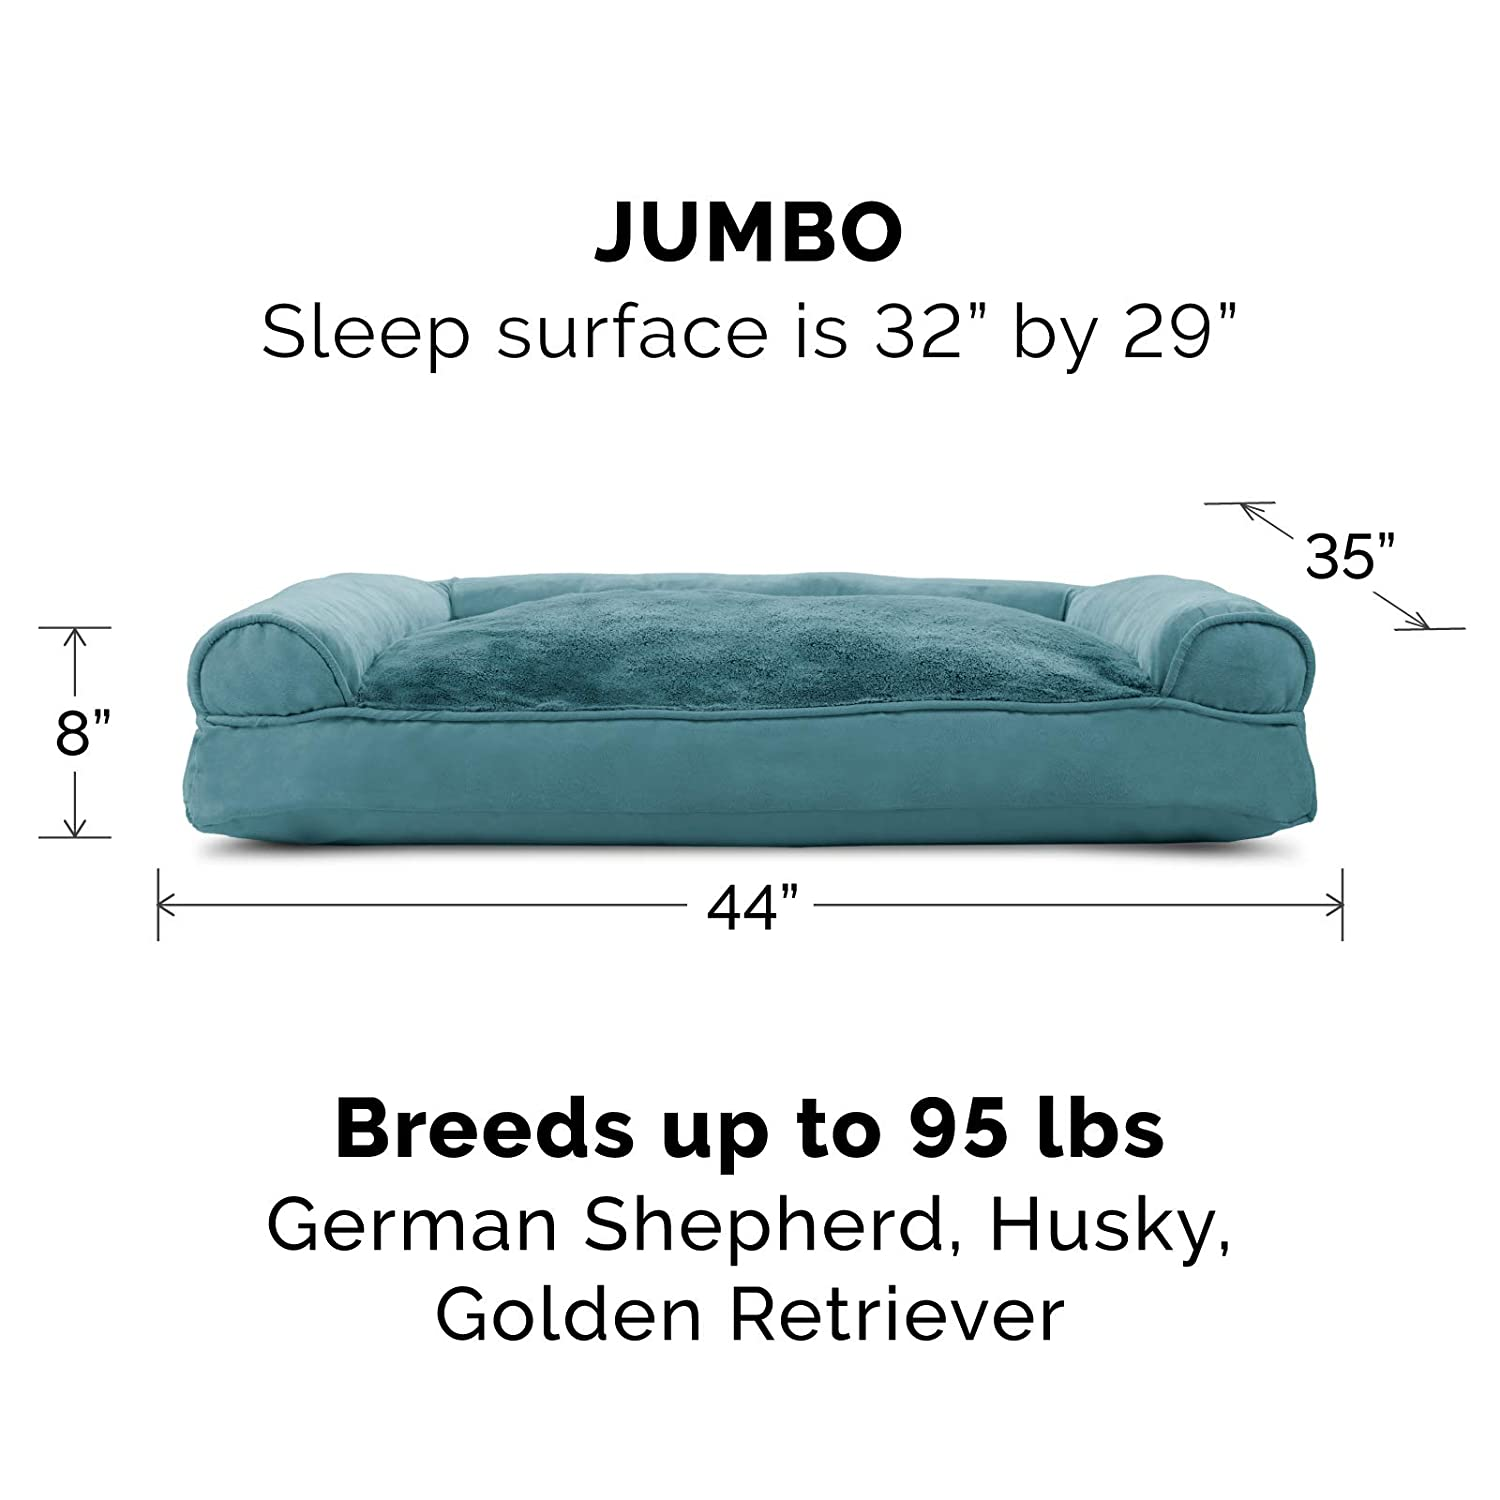 Diamond Blue Plush /& Decor Comfy Couch Pillow Sofa-Style Couch Pet Bed for Dogs /& Cats FurHaven Pet Dog Bed Jumbo